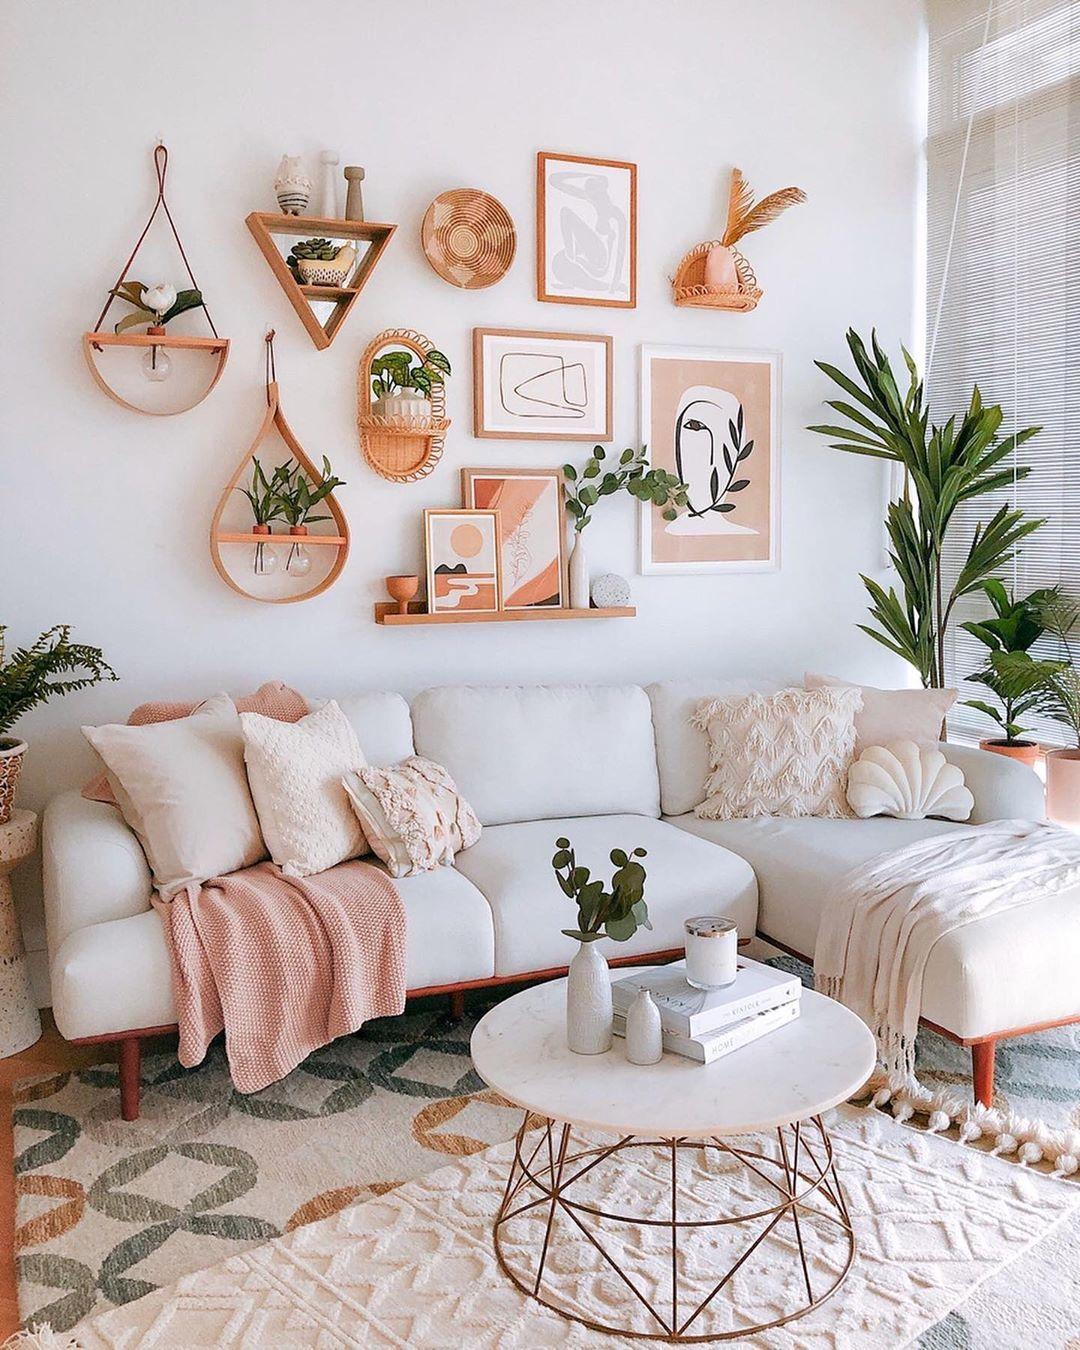 What Could Be The Full Potential Of Your Living Room This Whimsy Botanical Styling By Room Ideas Bedroom Living Room Decor Inspiration Living Room Designs Whimsical living room decor